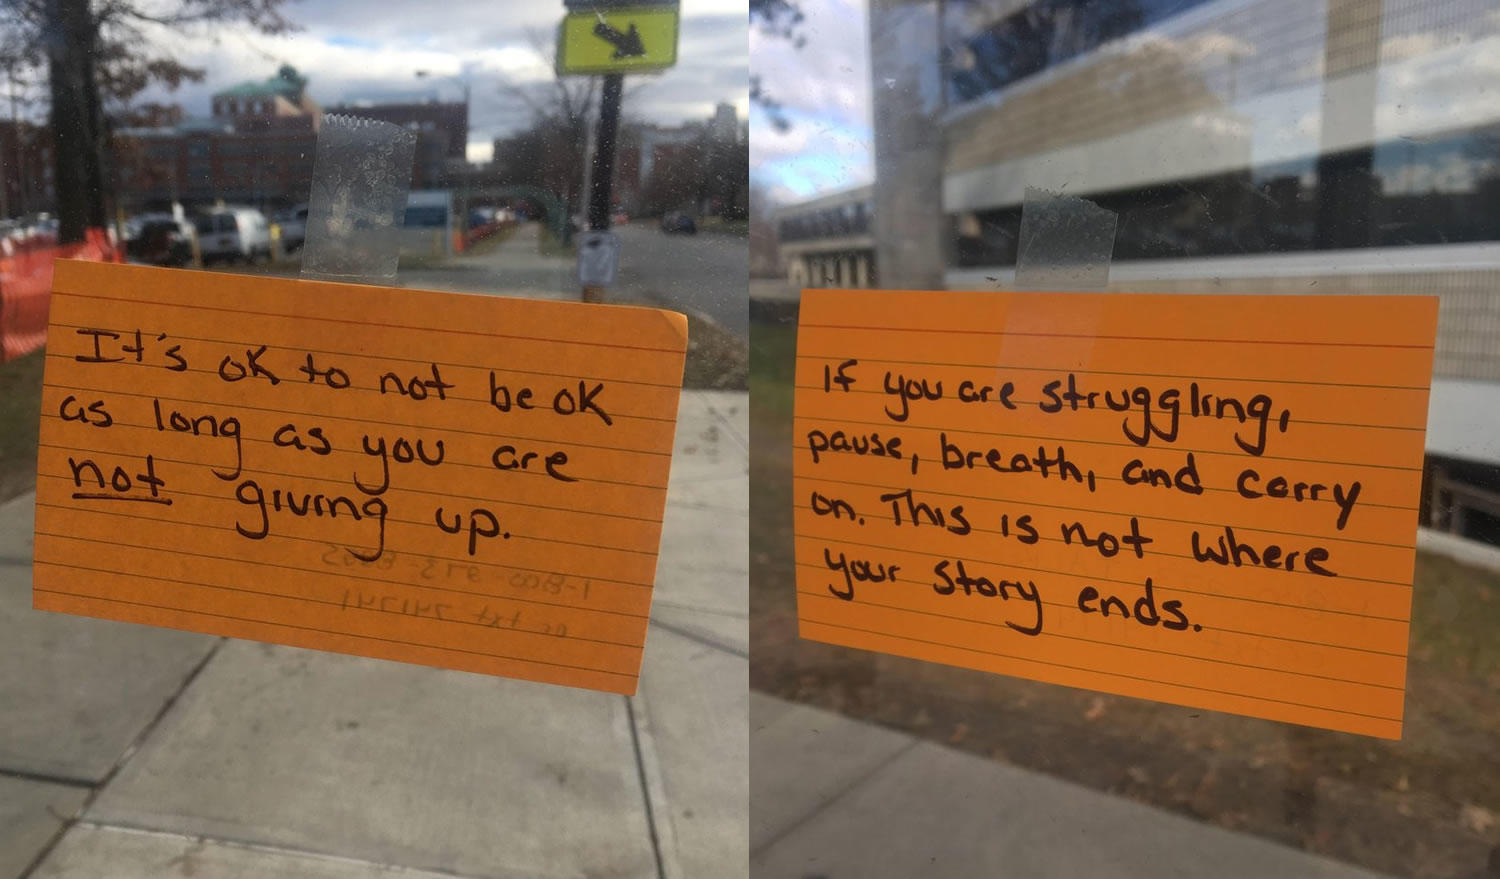 bus stop encouragement cards via Justin Devendorf